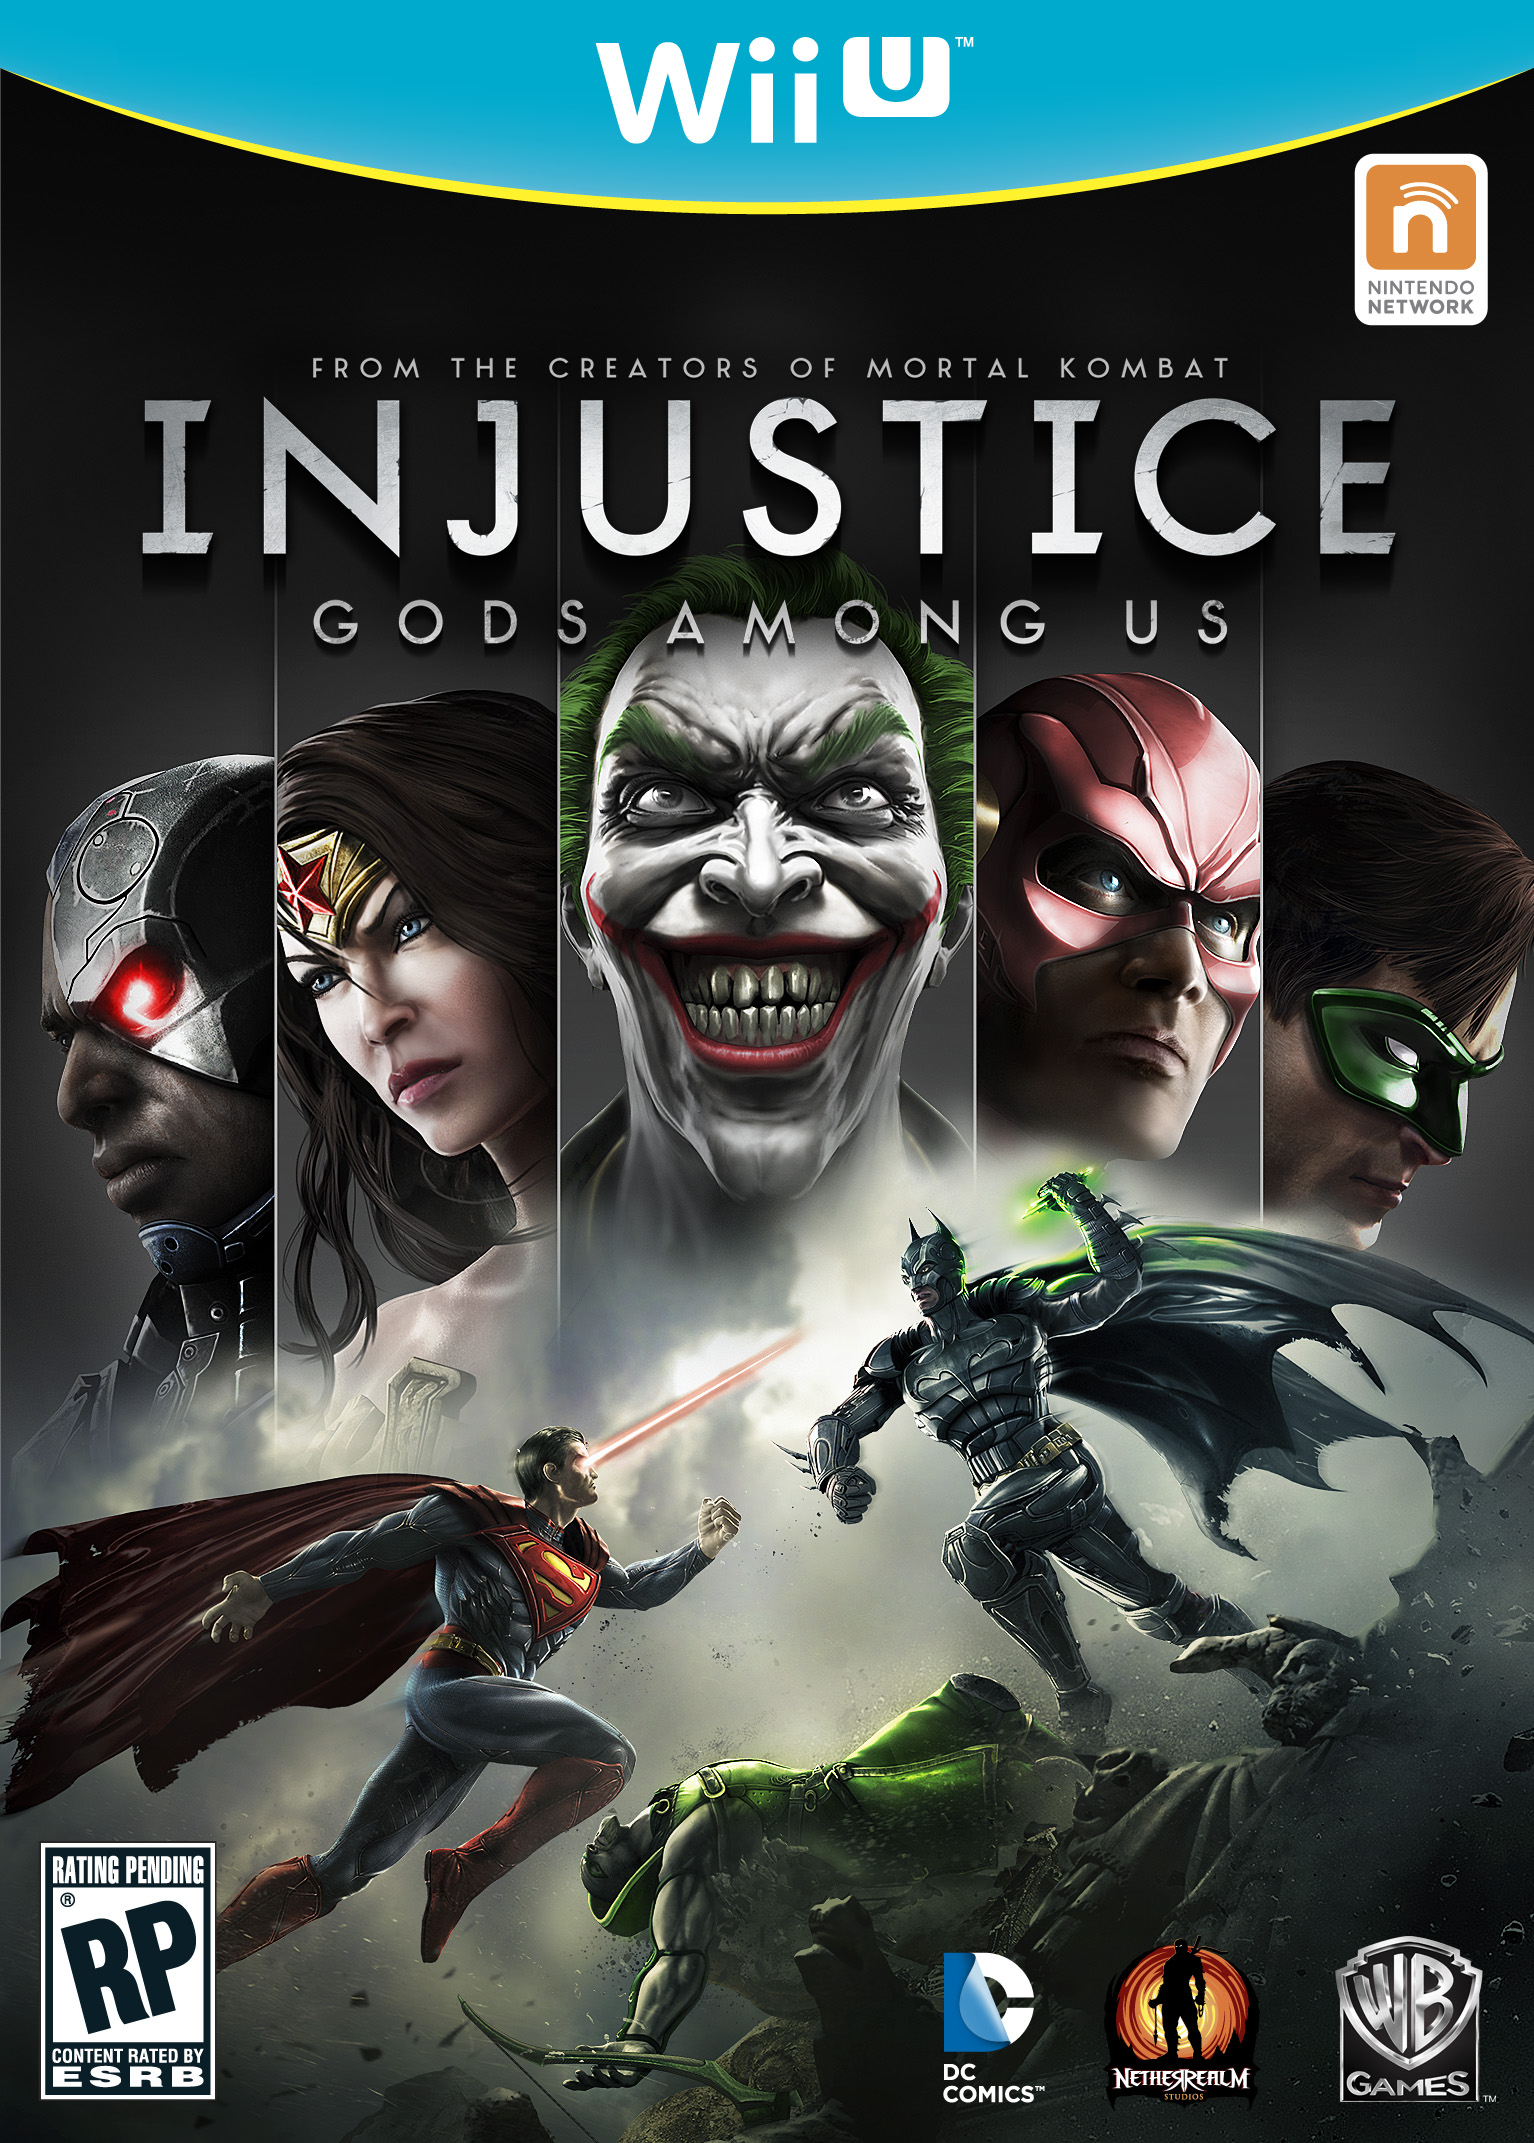 Wii U injustice cover